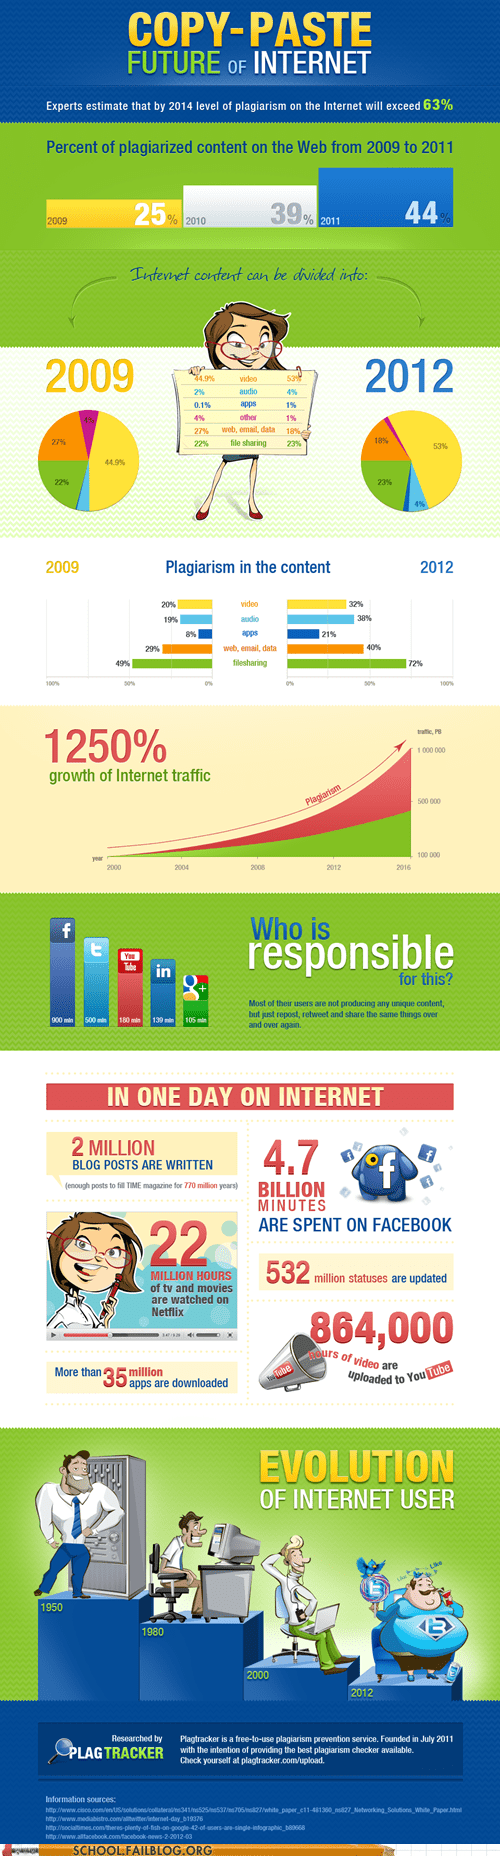 class is in session copy paste future of the internet infographic plagiarism 110 plagtracker